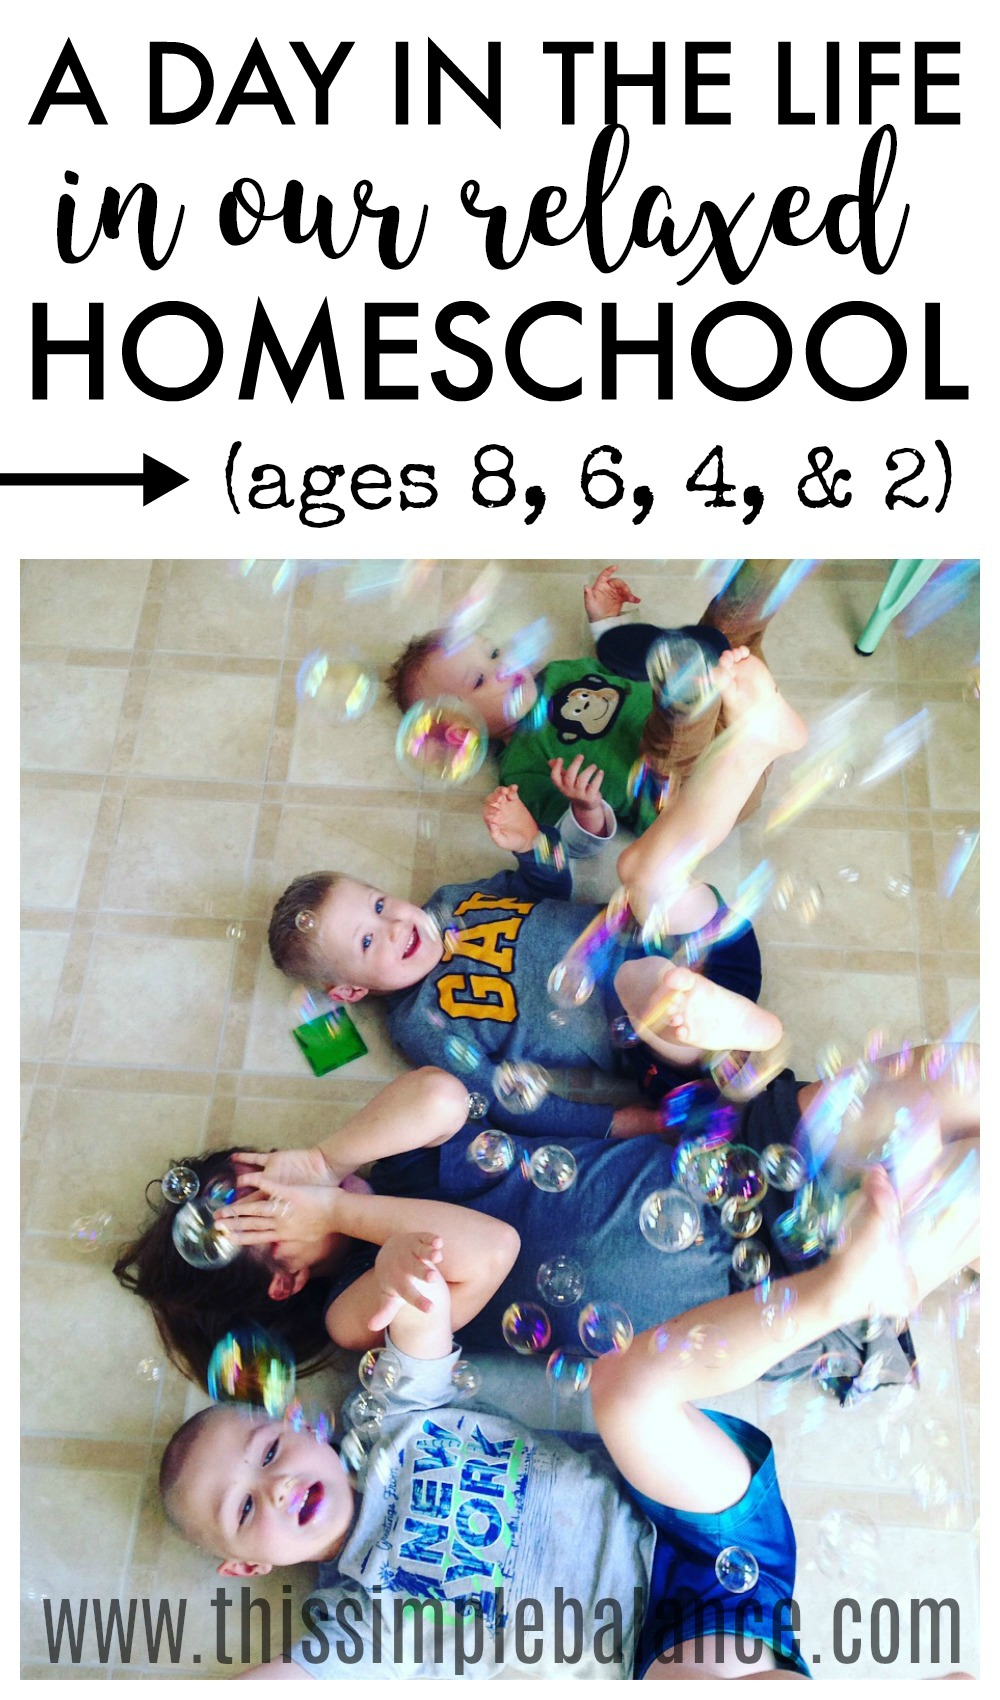 Want a peek into our relaxed homeschool? Get a glimpse of what relaxed homeschooling looks life for our family. #relaxedhomeschooling